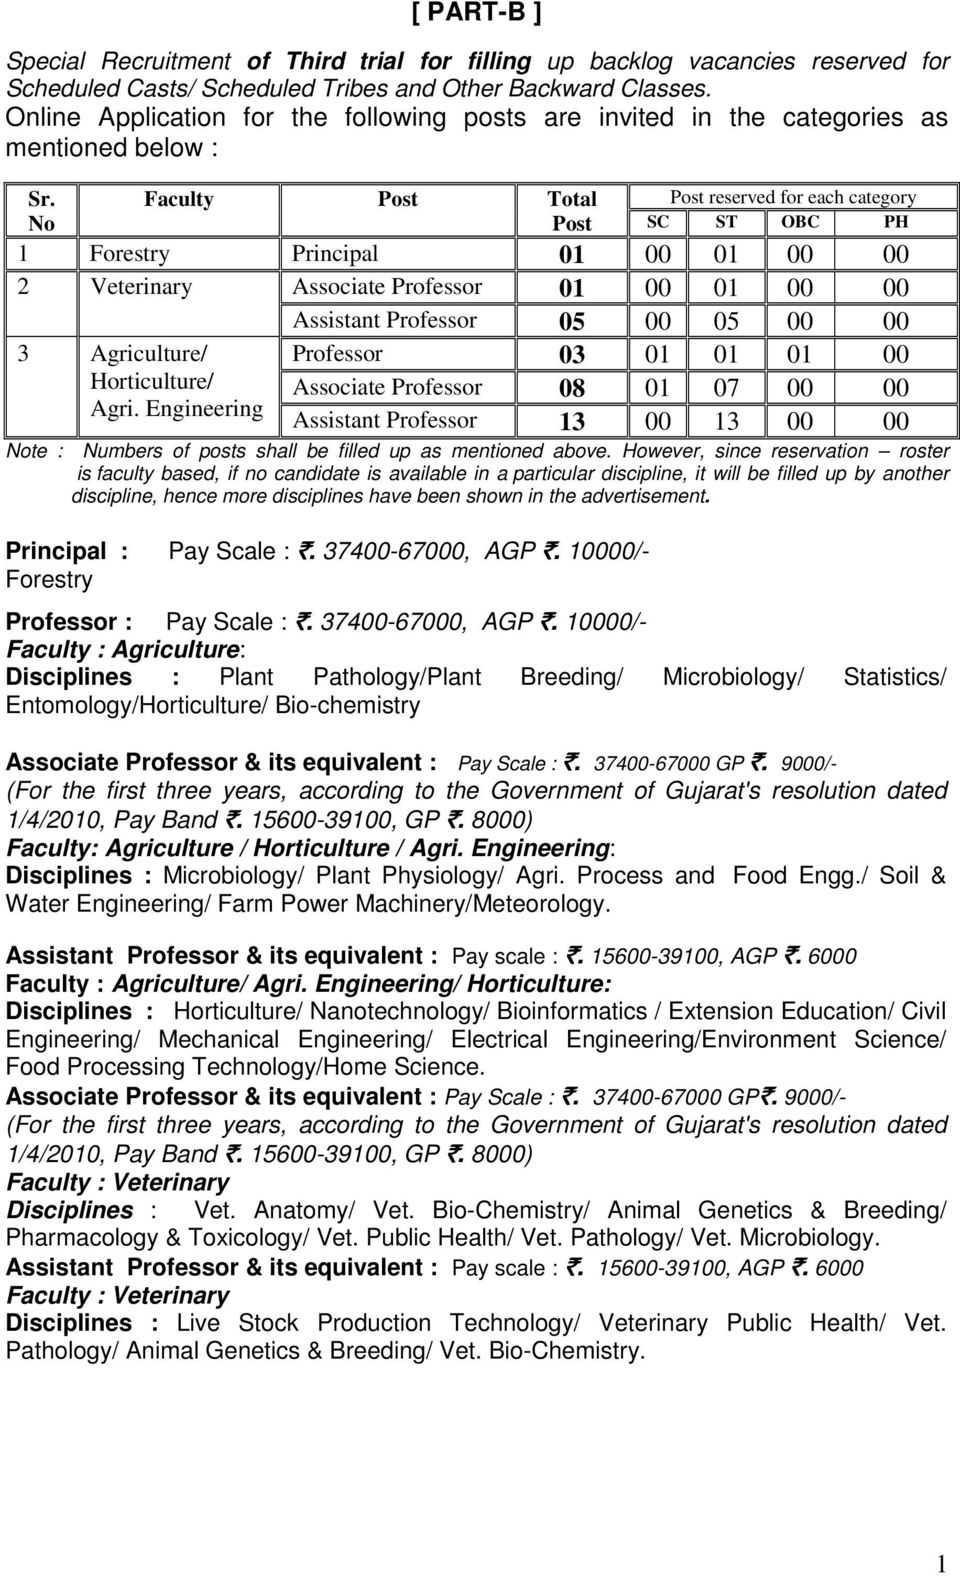 No Faculty Post Total Post Post reserved for each category SC ST OBC PH 1 Forestry Principal 01 00 01 00 00 2 Veterinary Associate Professor 01 00 01 00 00 Assistant Professor 05 00 05 00 00 3